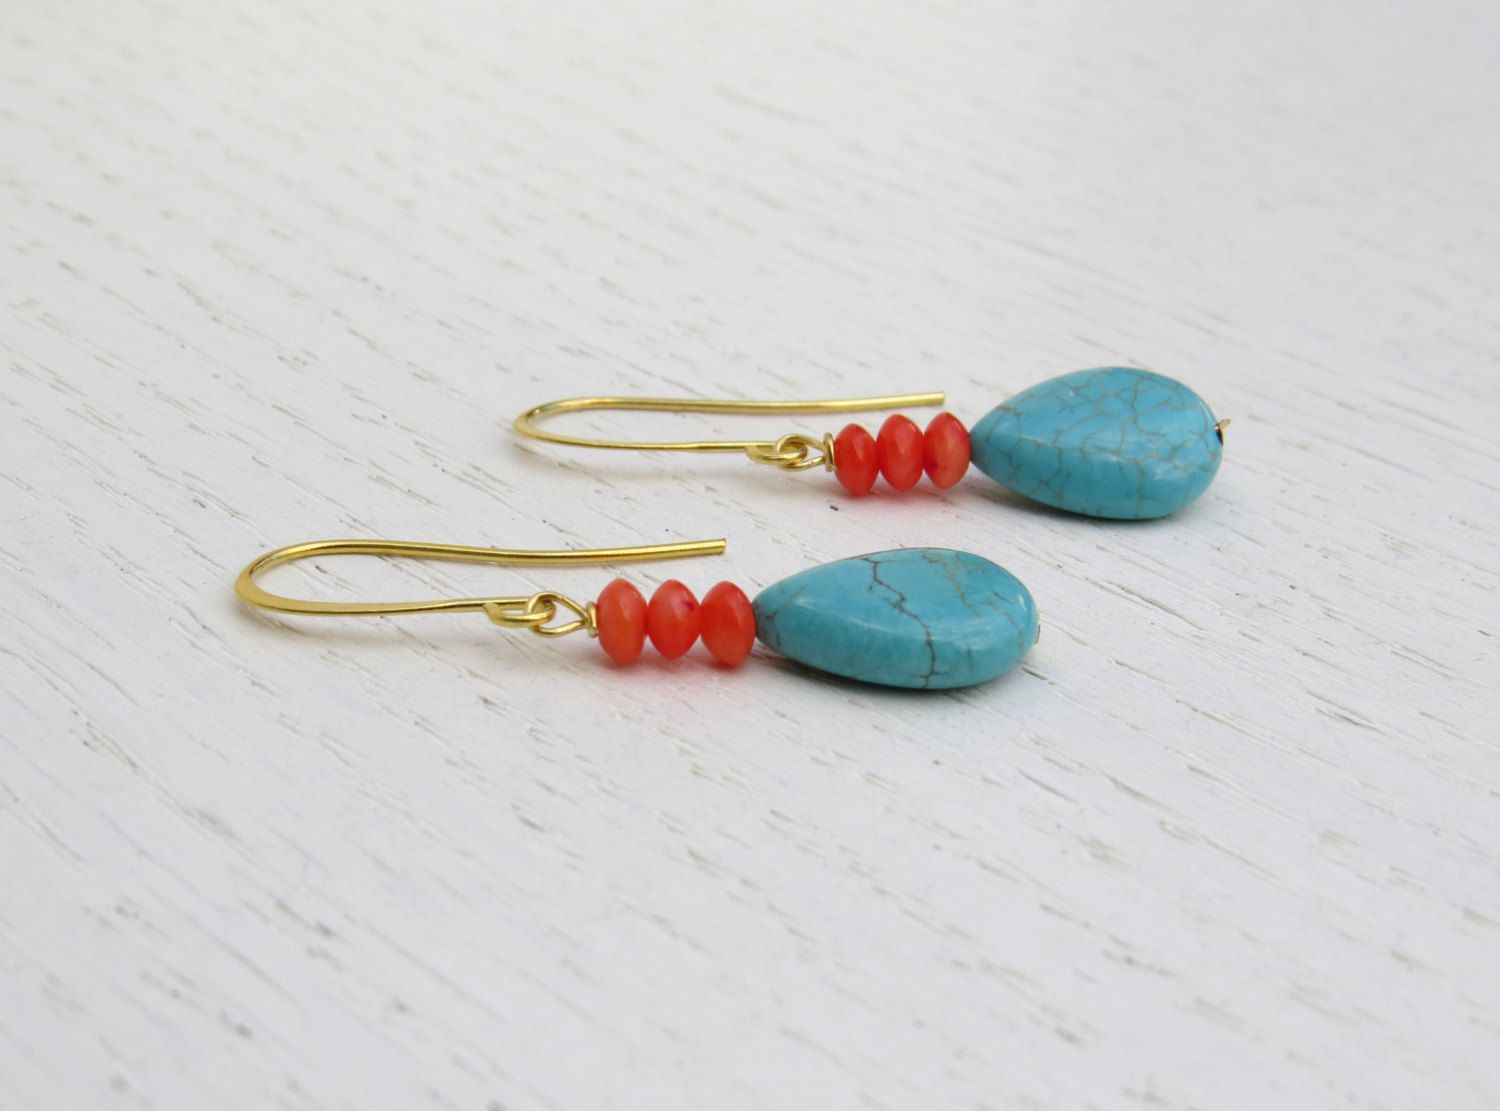 Holiday Pink C Earrings Turquoise Drop By Sarittdesigns On Etsy